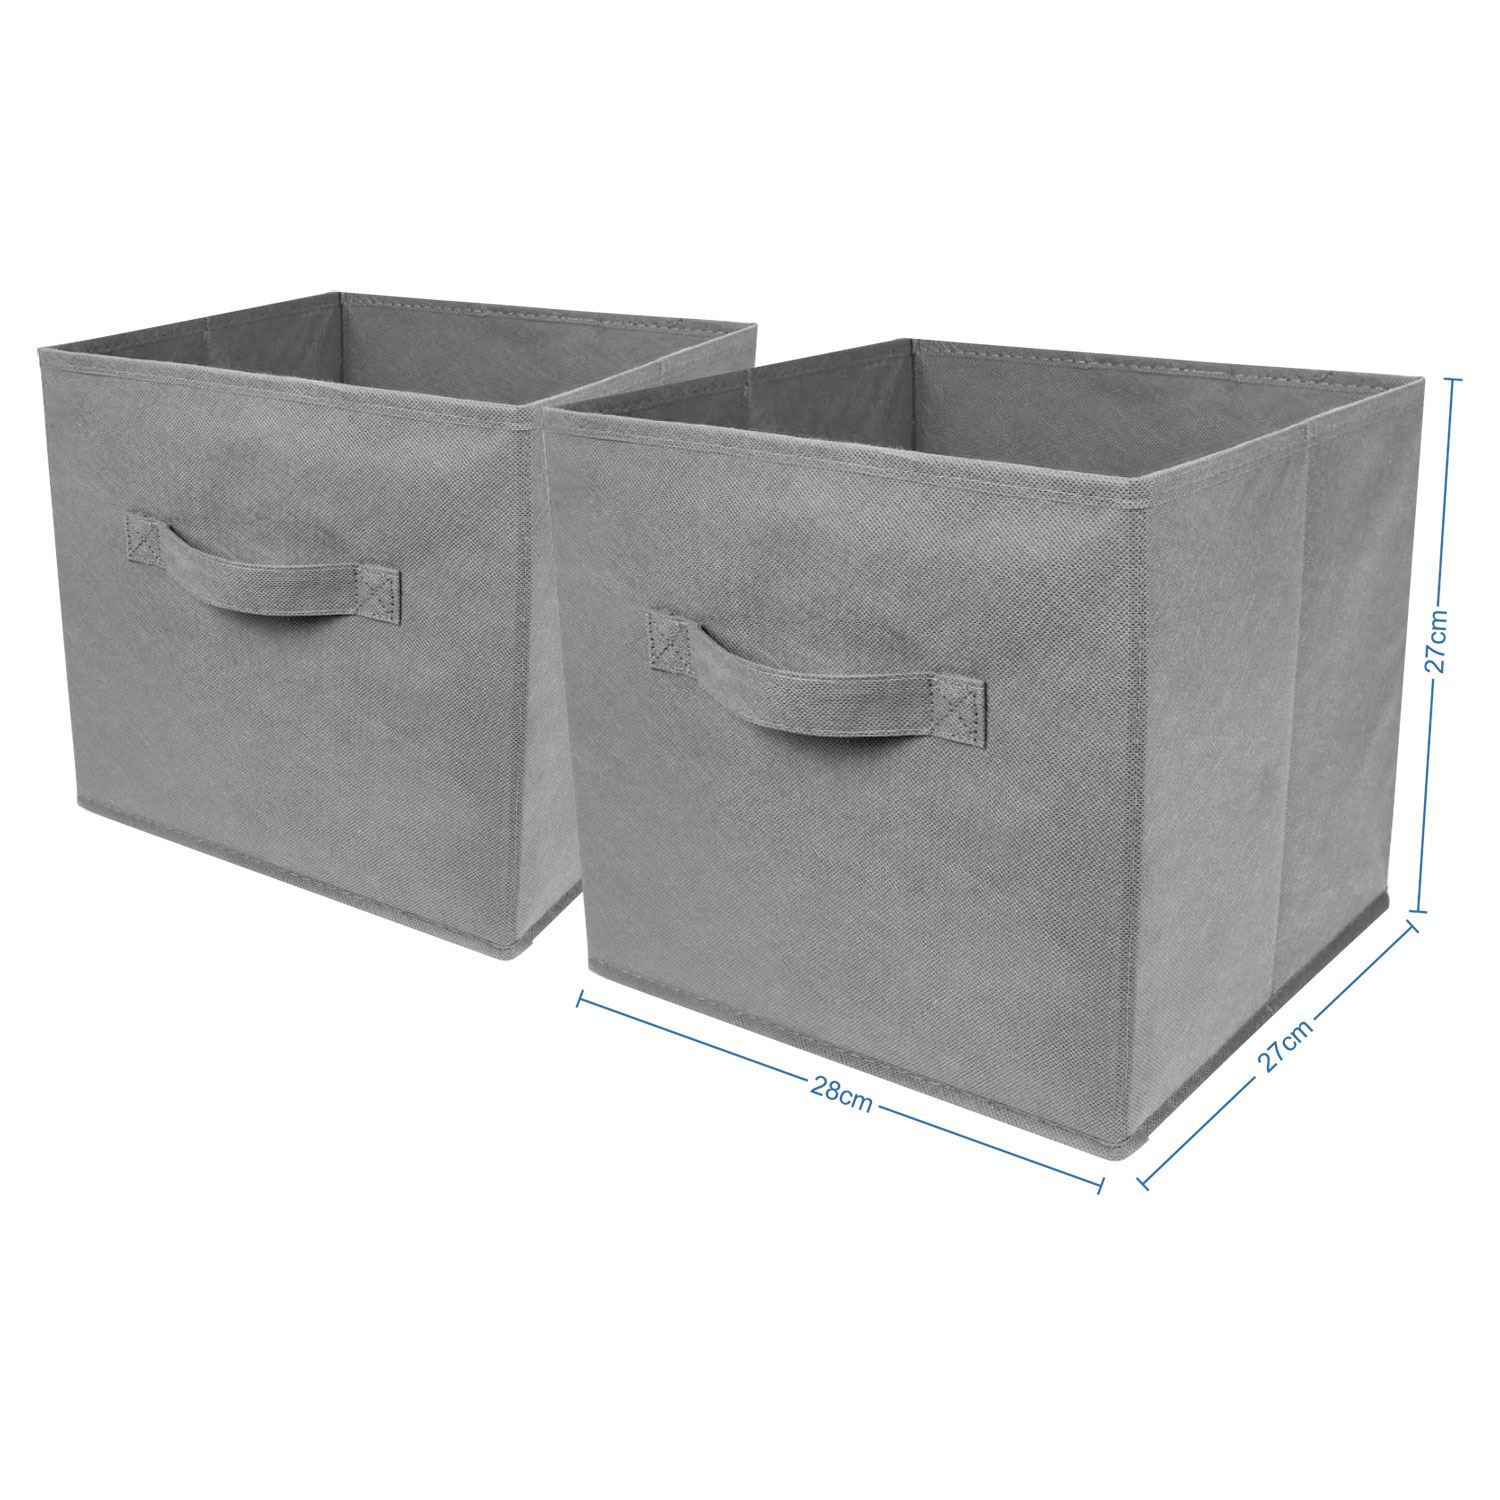 2 pack foldable large square storage box collapsible fabric cubes kids home grey. Black Bedroom Furniture Sets. Home Design Ideas